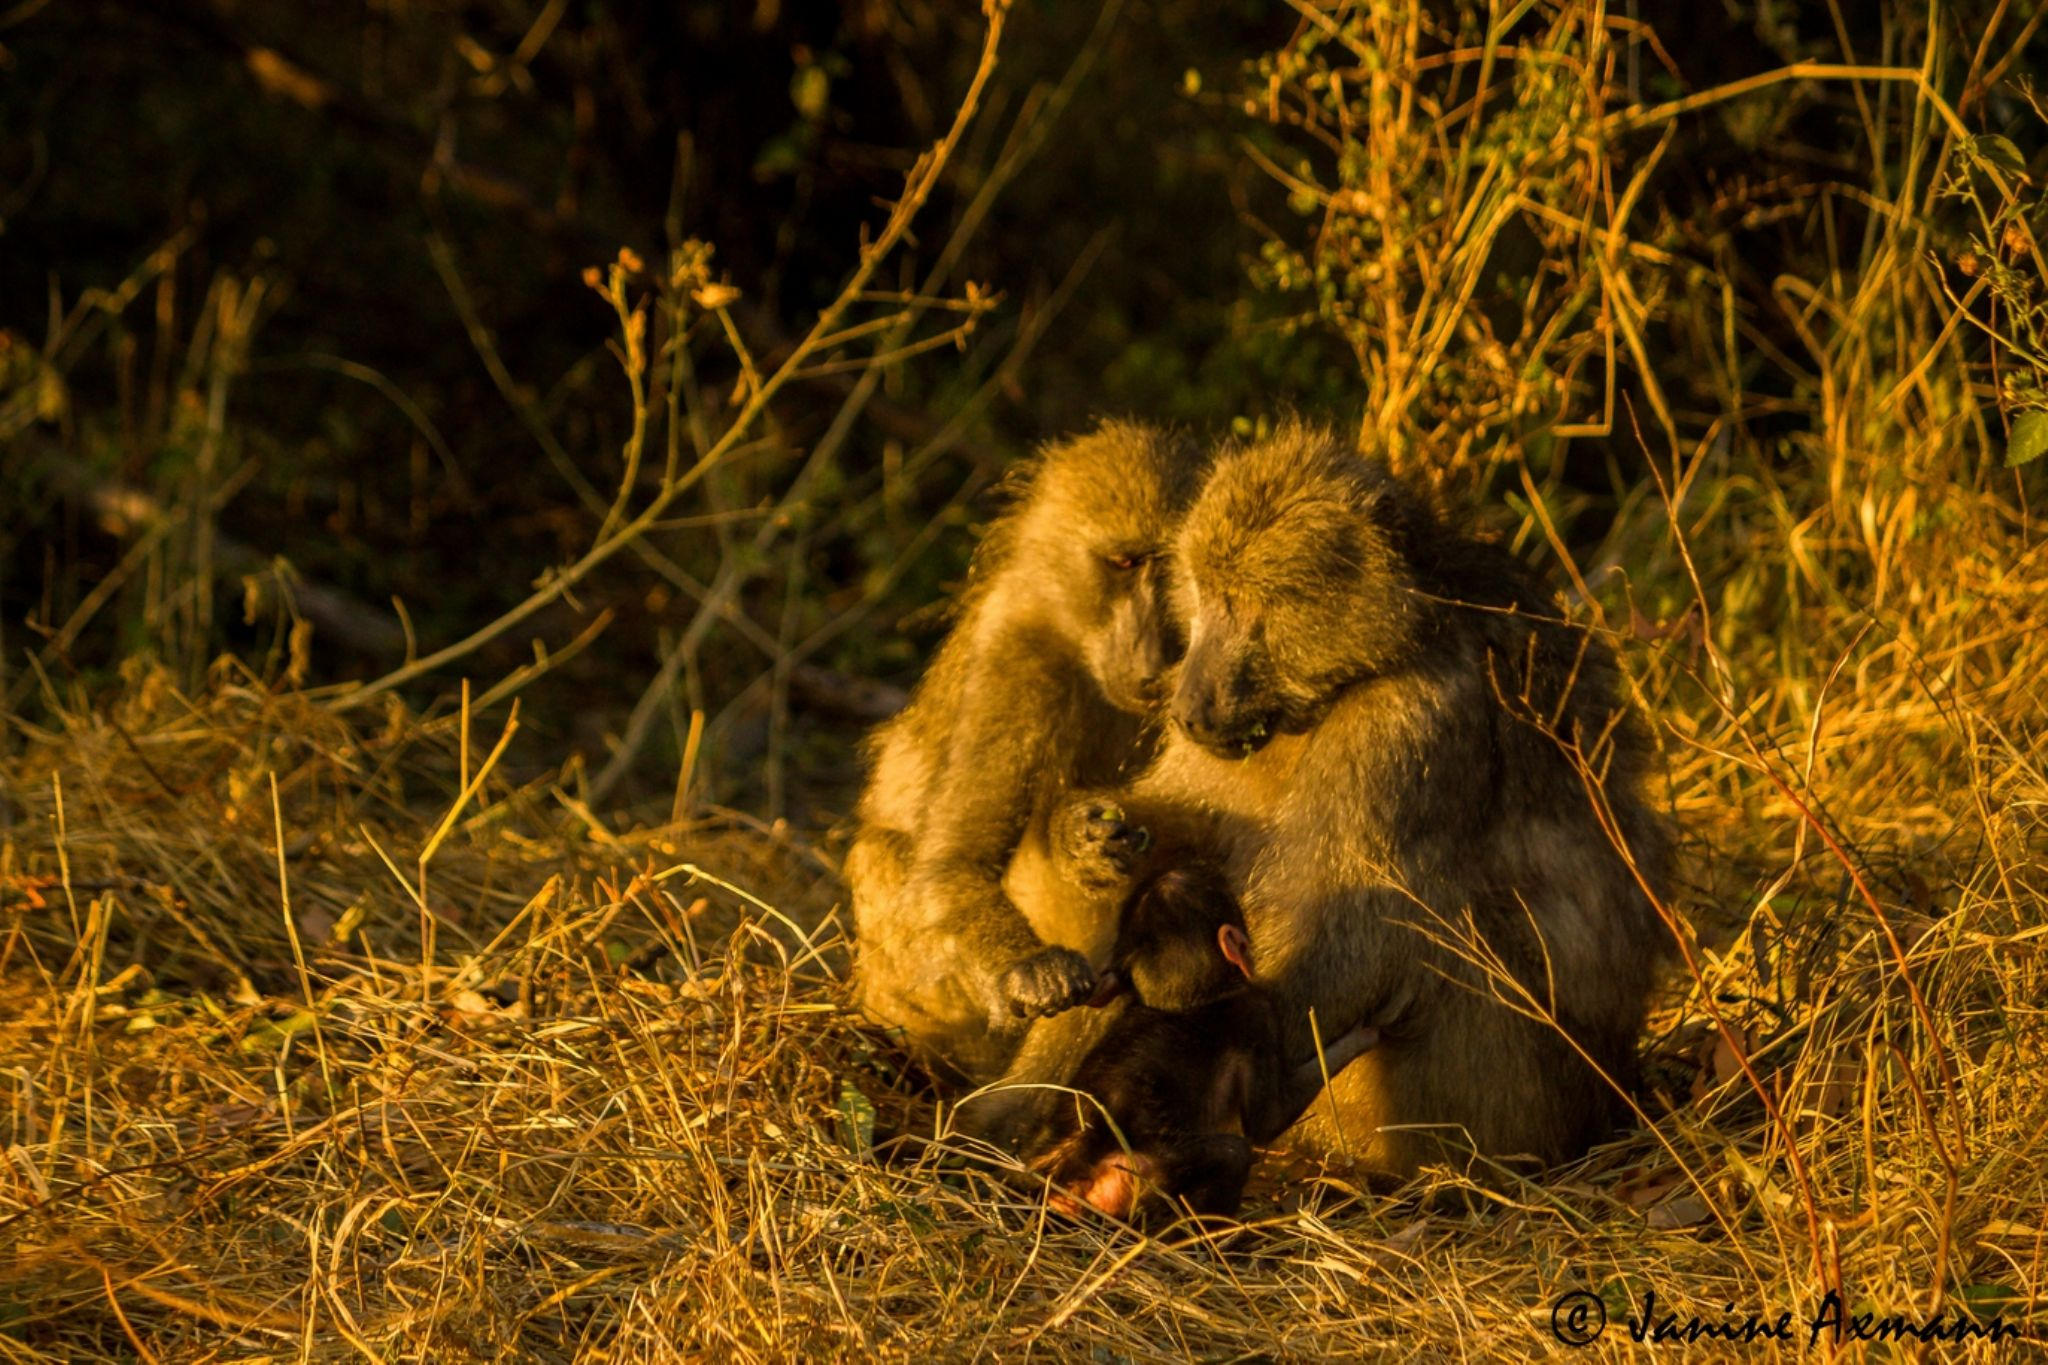 Golden Hour Primate Intimacy by Janine Axmann